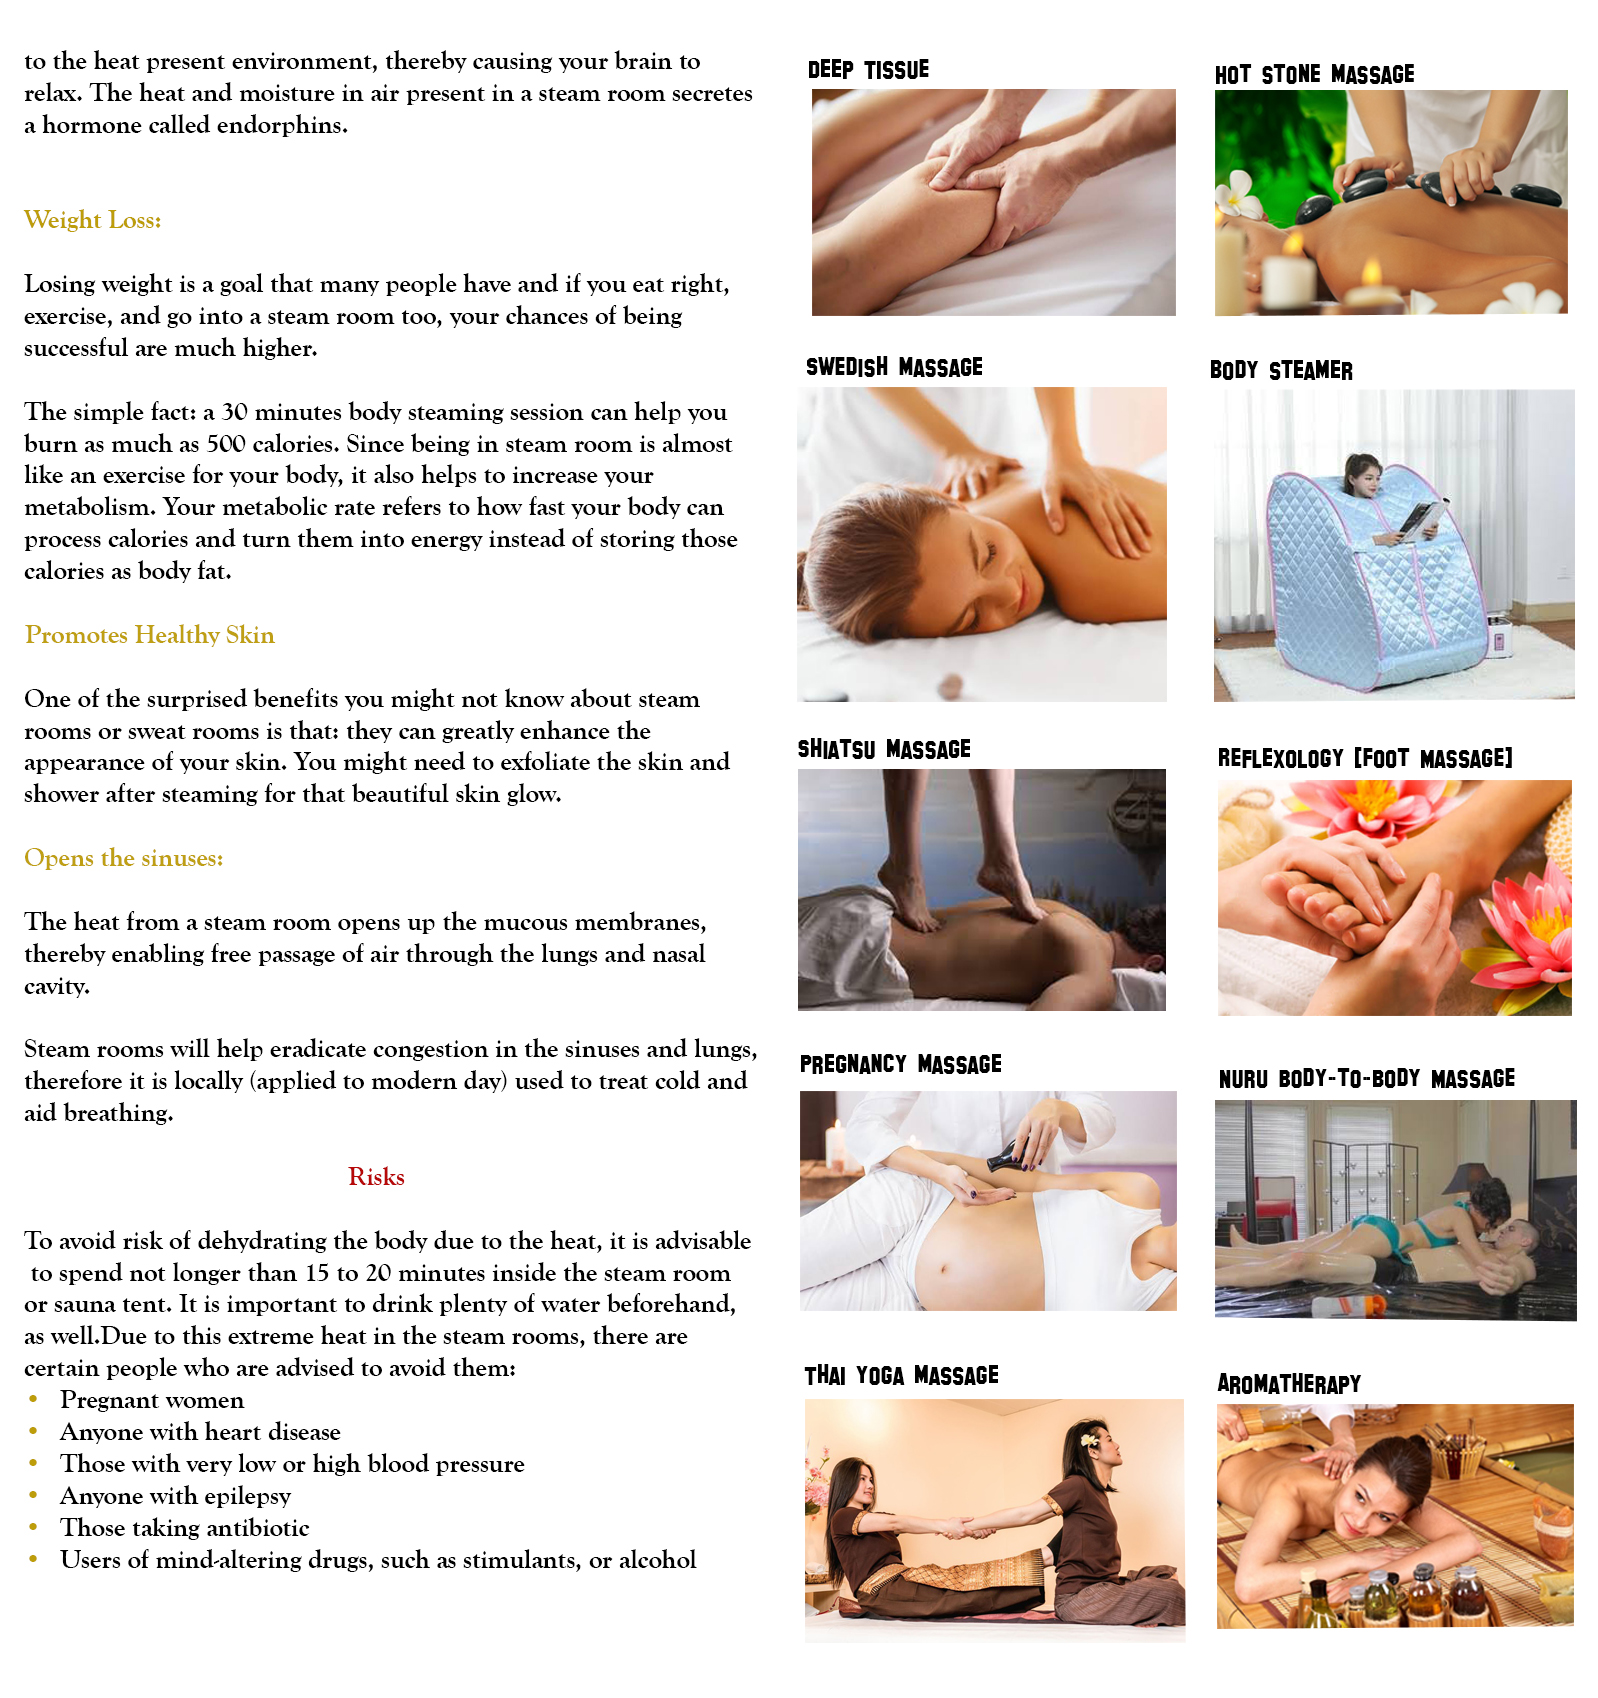 quality massage service in Lagos